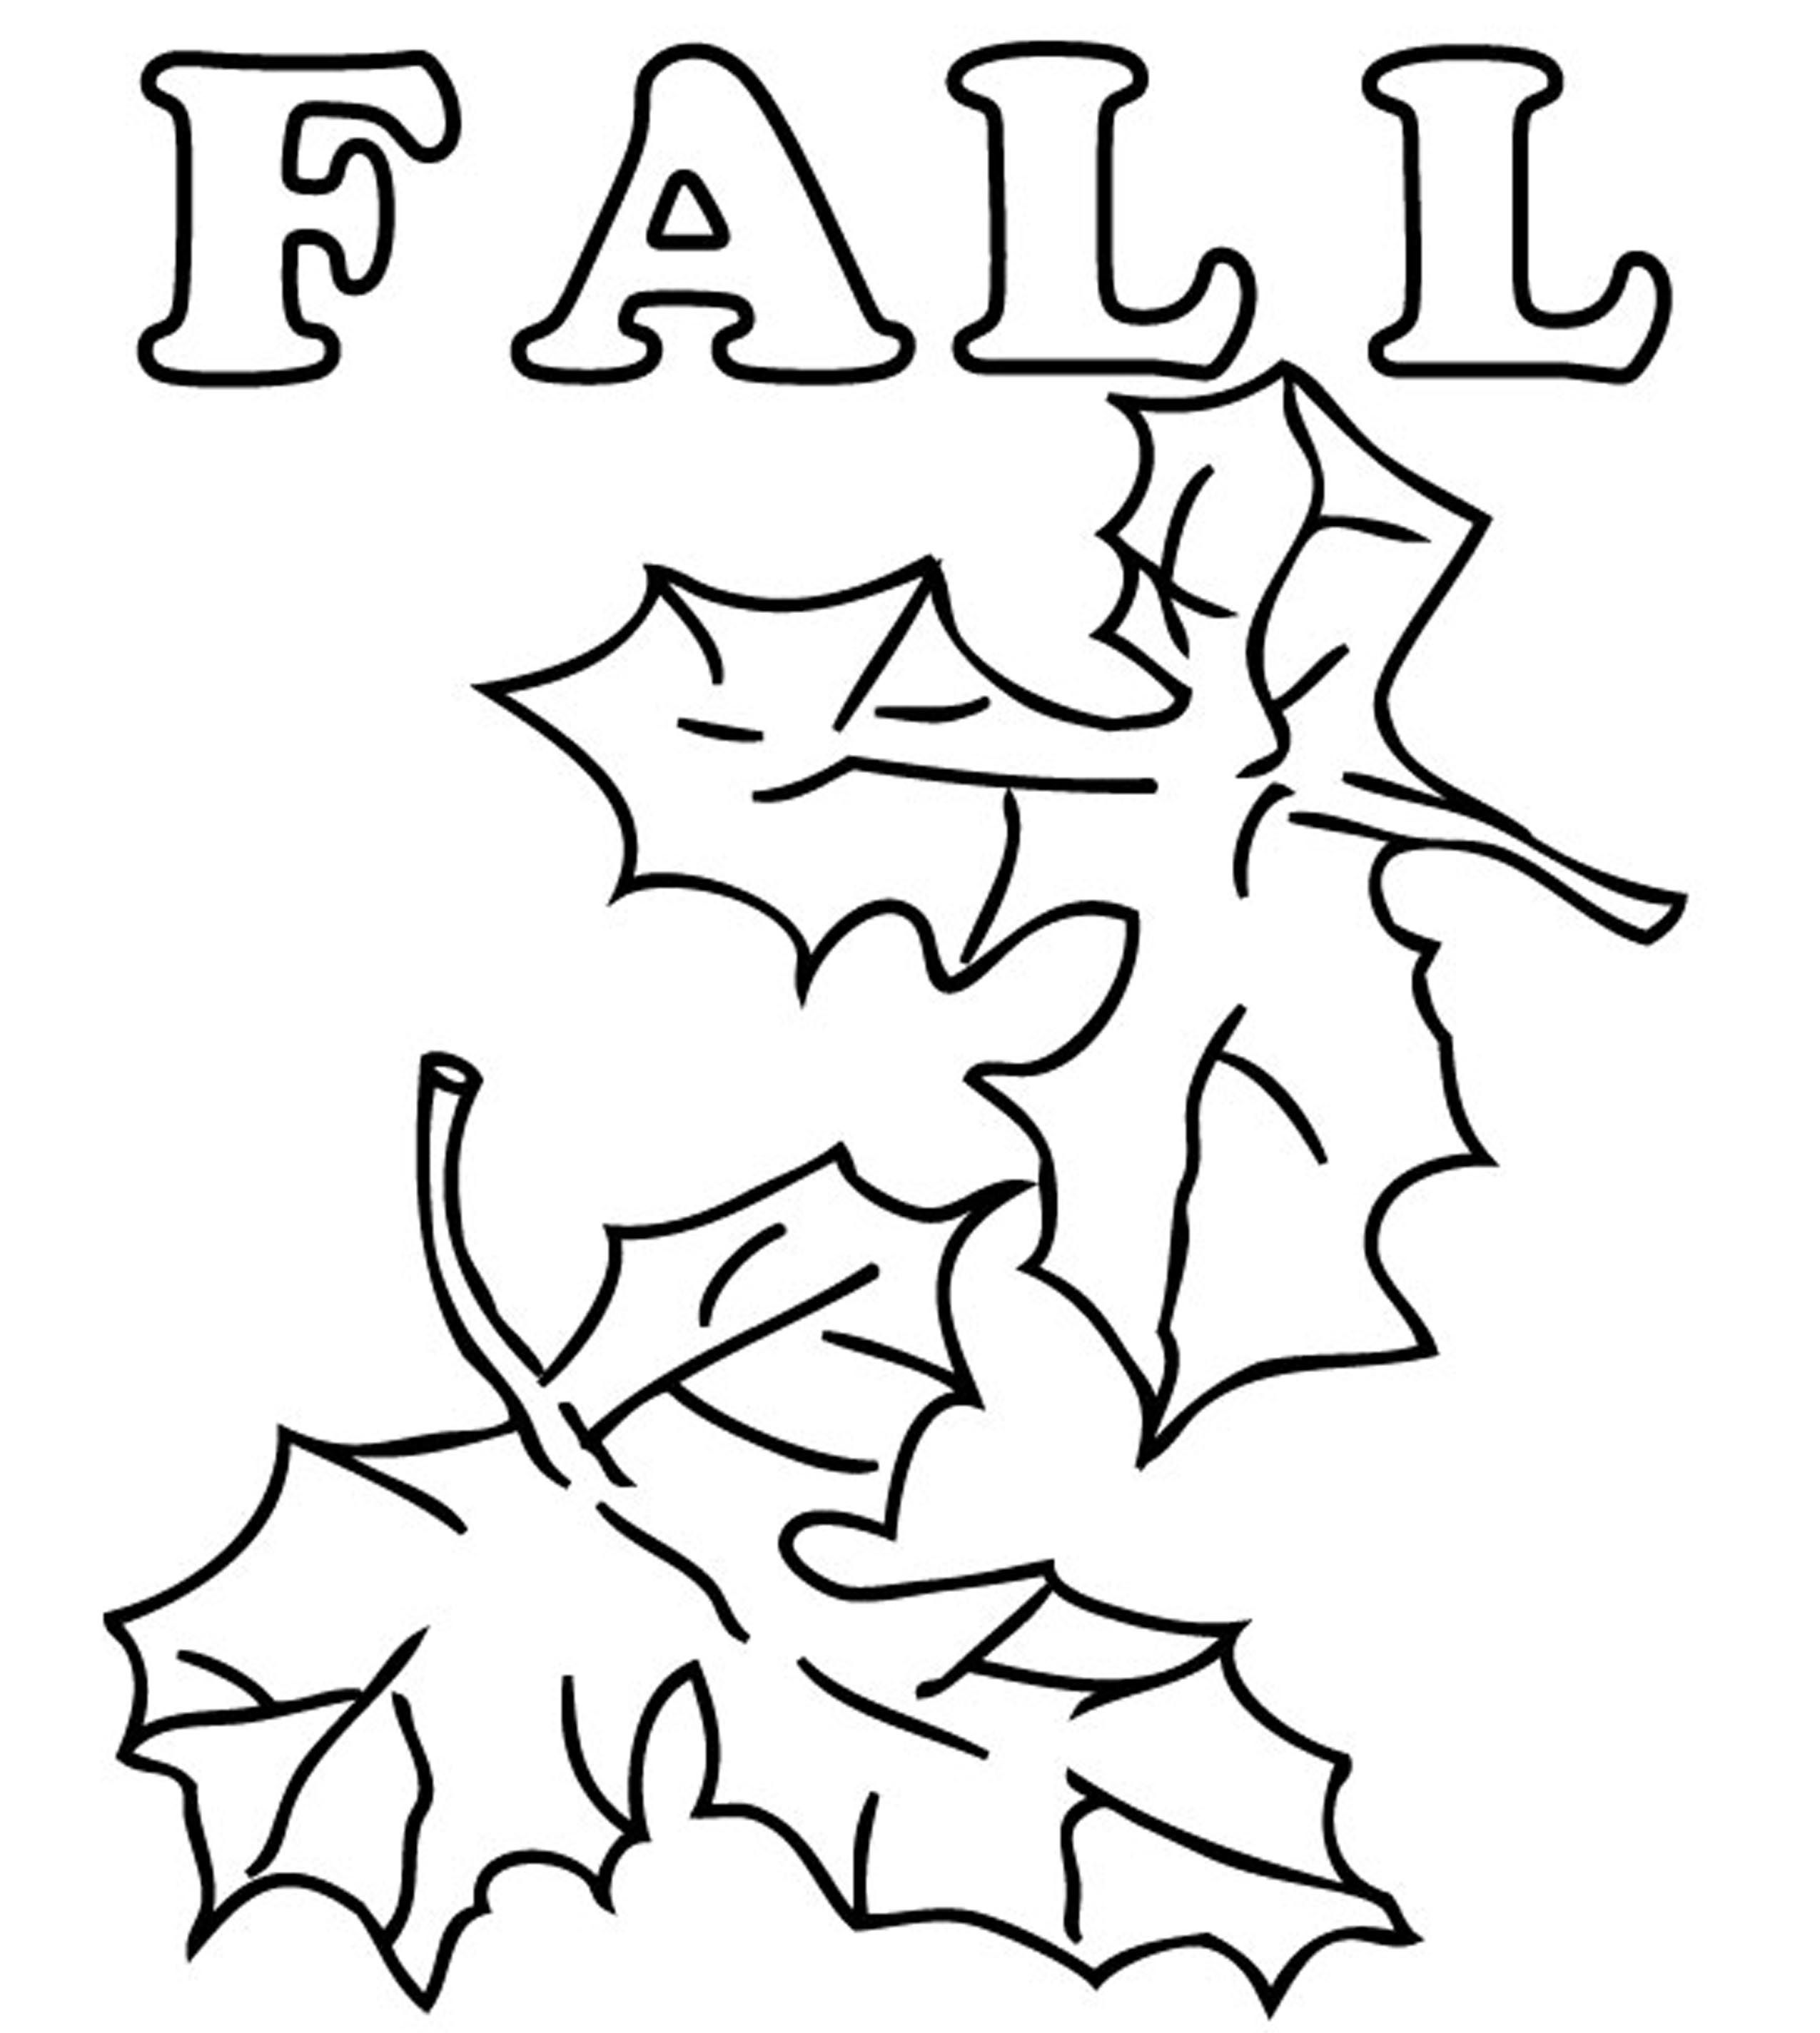 autumn leaves pictures to colour fall leaves coloring pages getcoloringpagescom leaves pictures colour autumn to